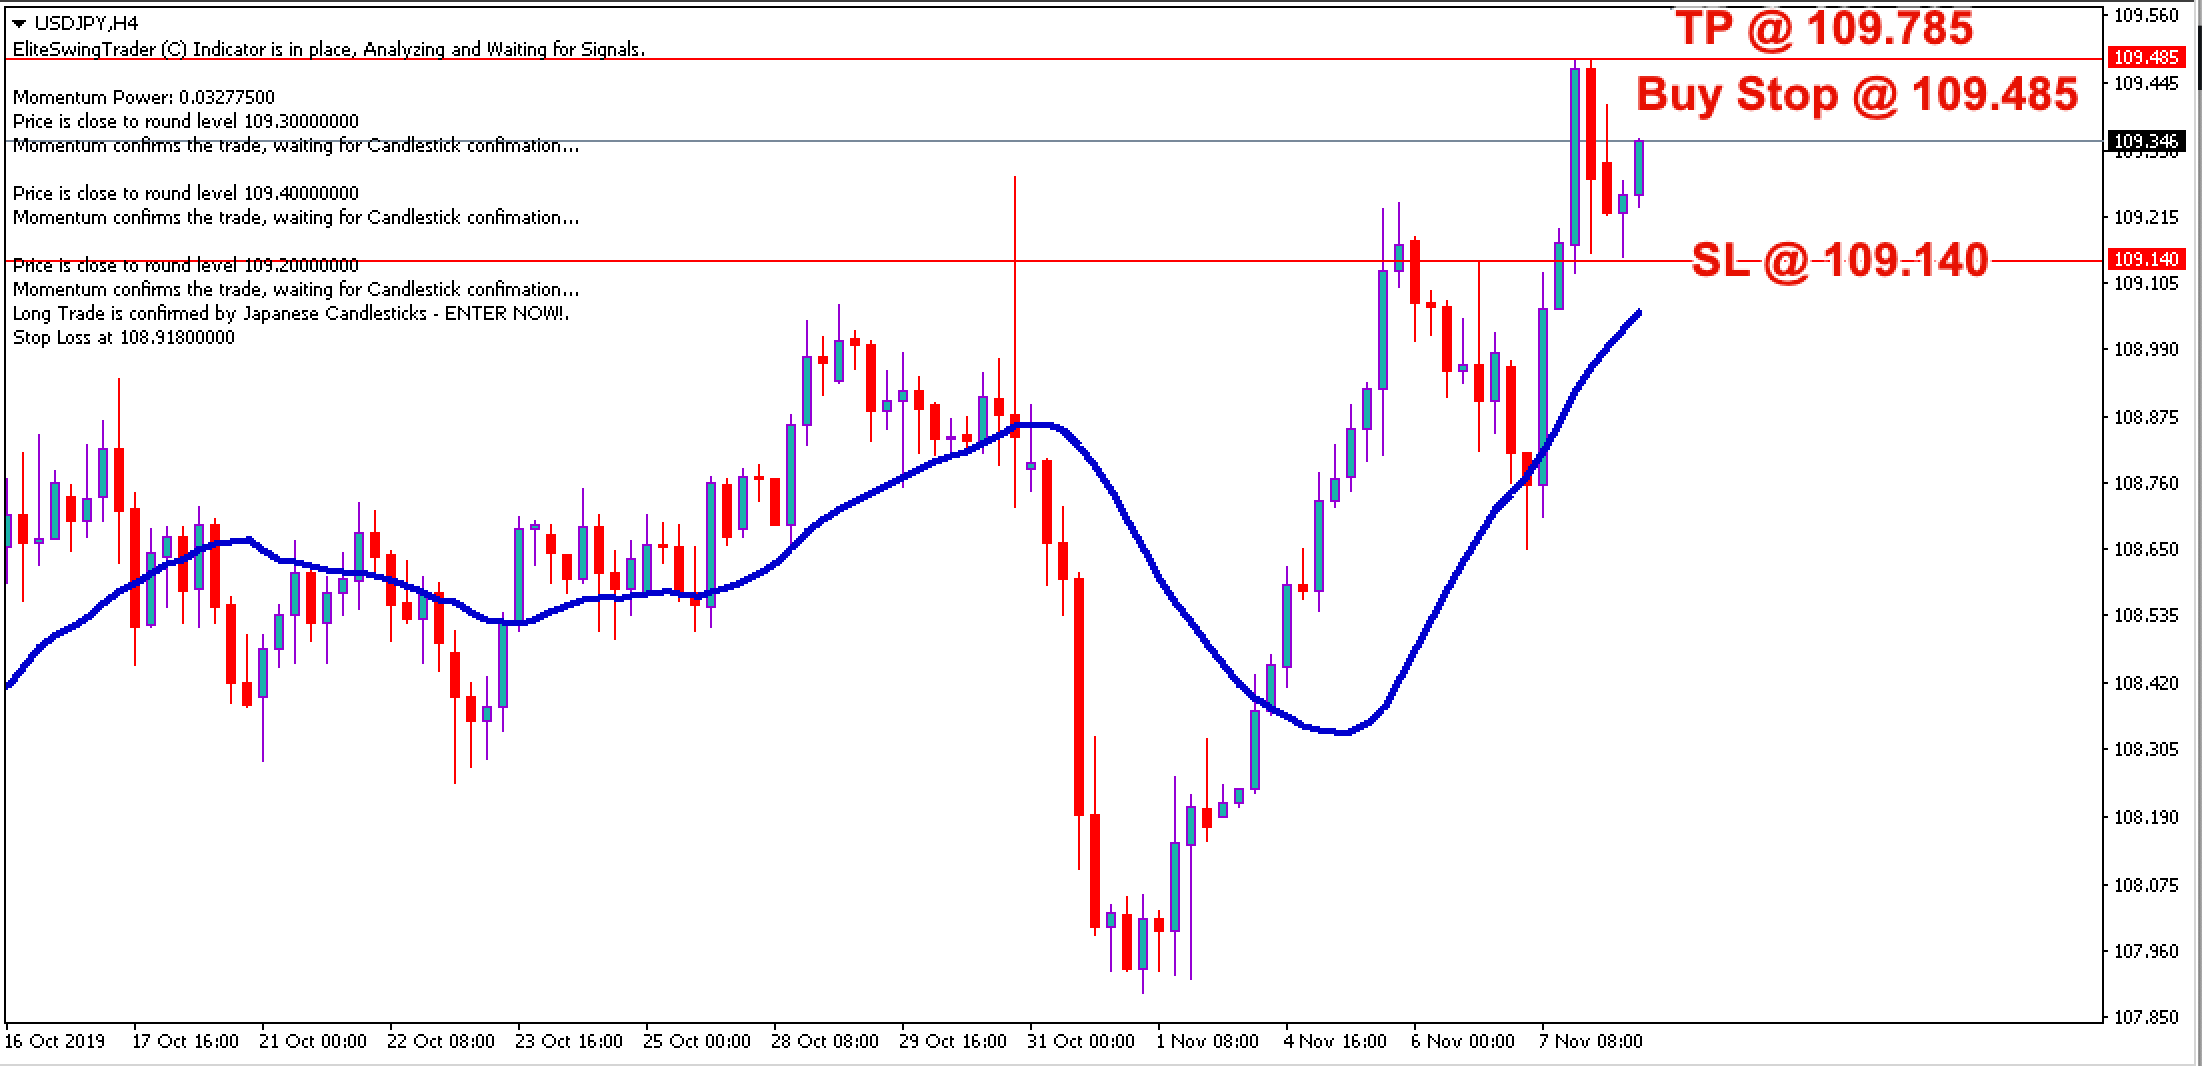 Free Forex Trade Signals USDJPY – 8th Nov 2019